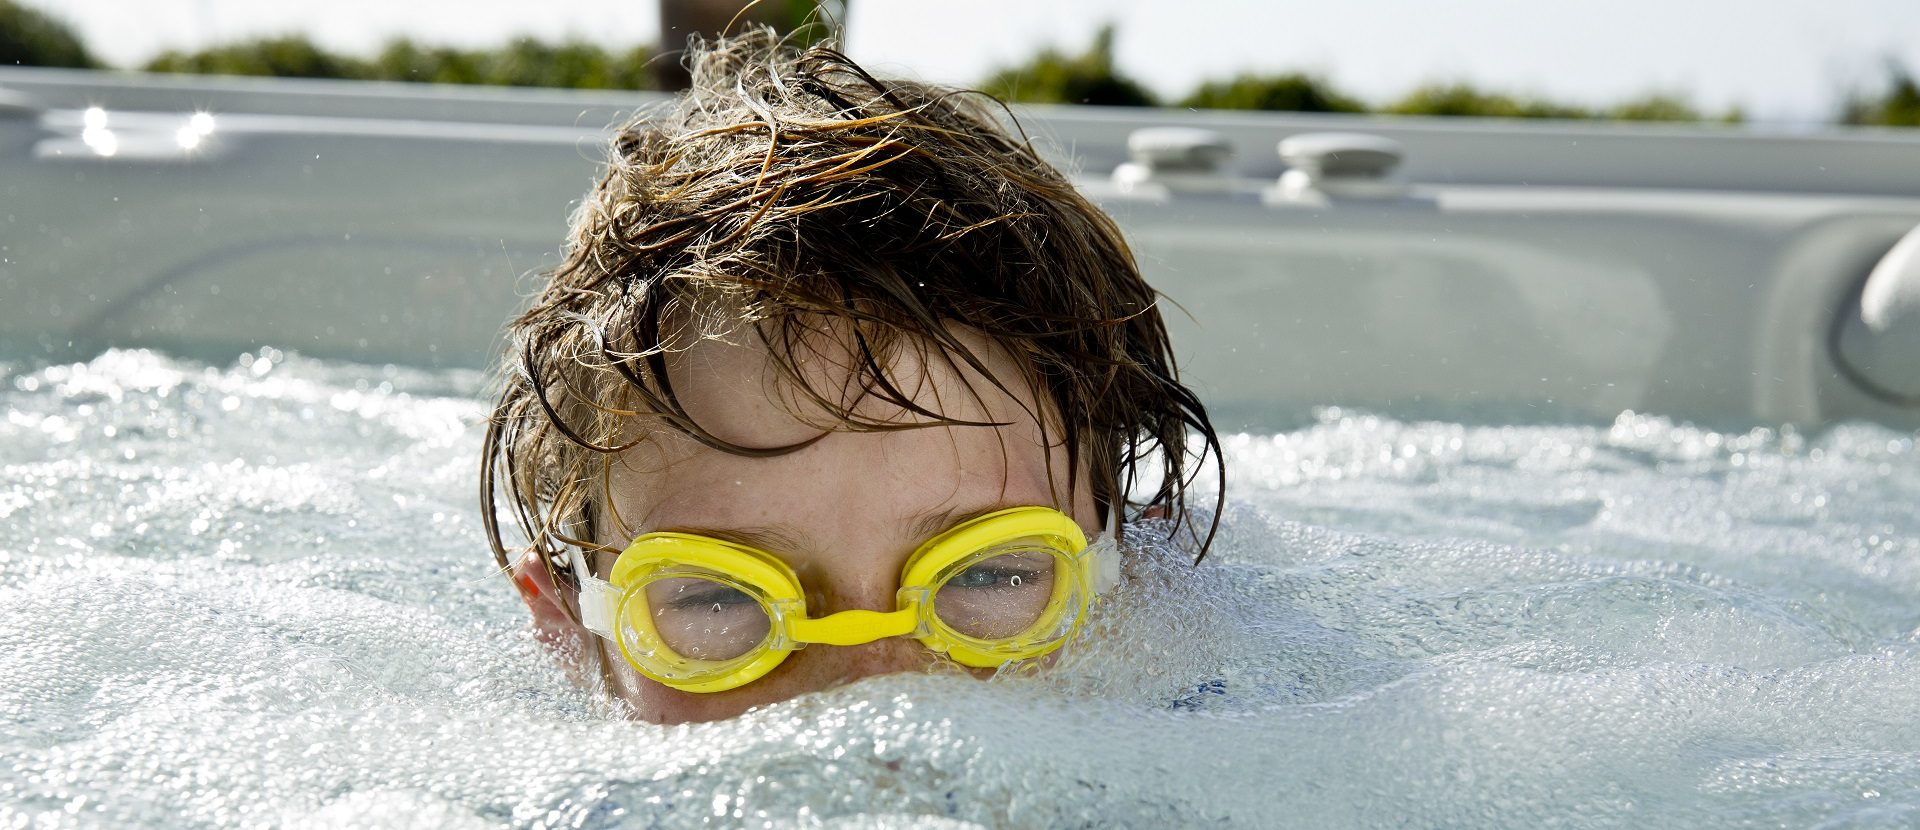 How to Entertain Children in a Hot Tub